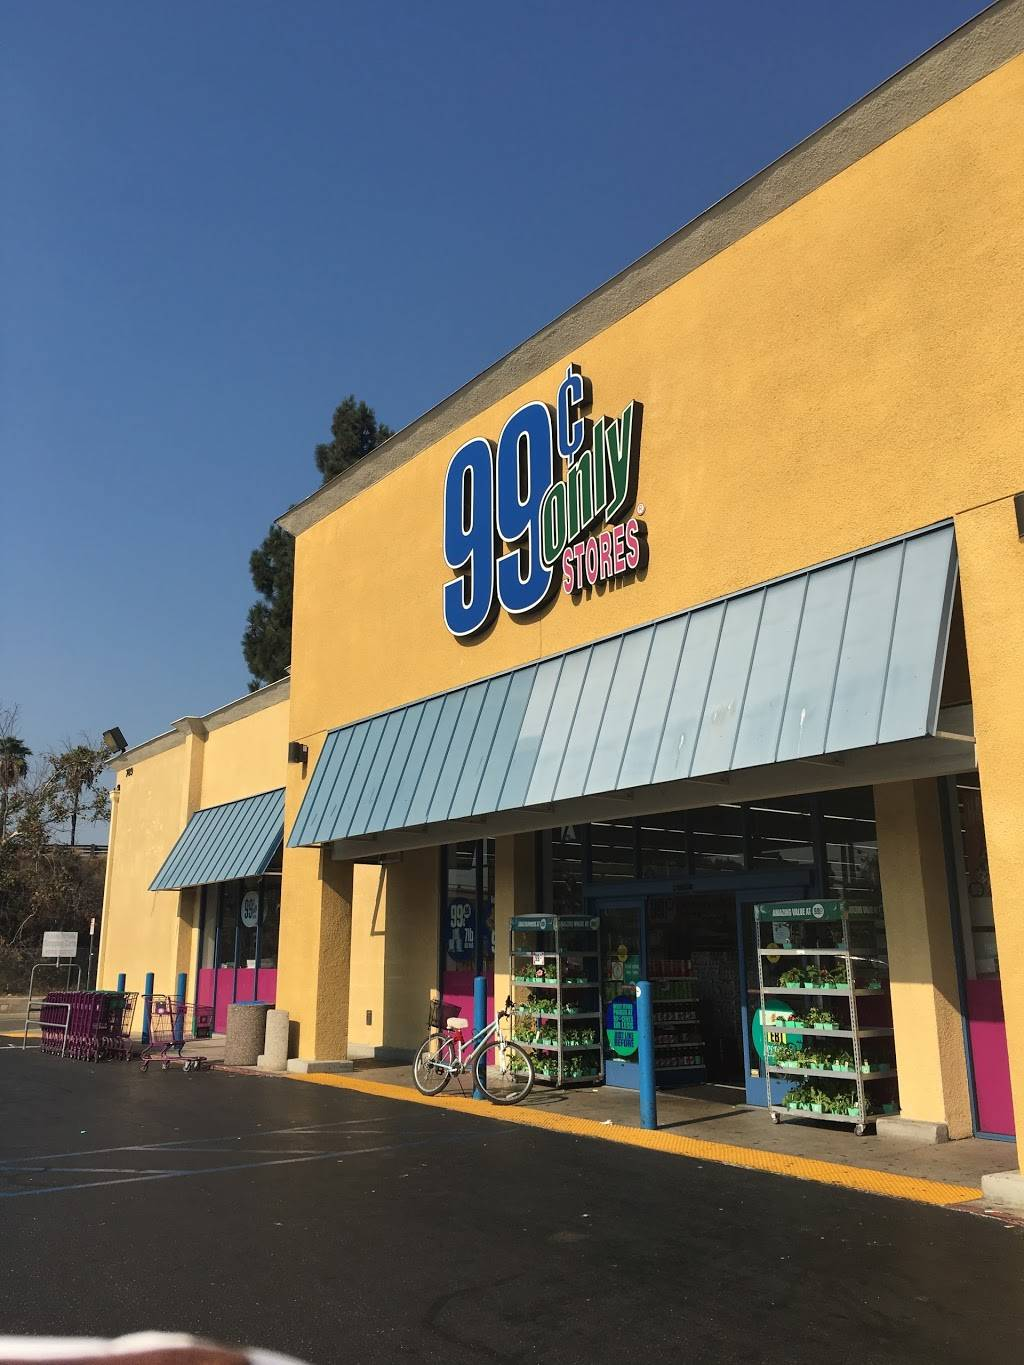 99 Cents Only Stores - supermarket  | Photo 4 of 10 | Address: 789 S Tustin St, Orange, CA 92866, USA | Phone: (714) 289-9992